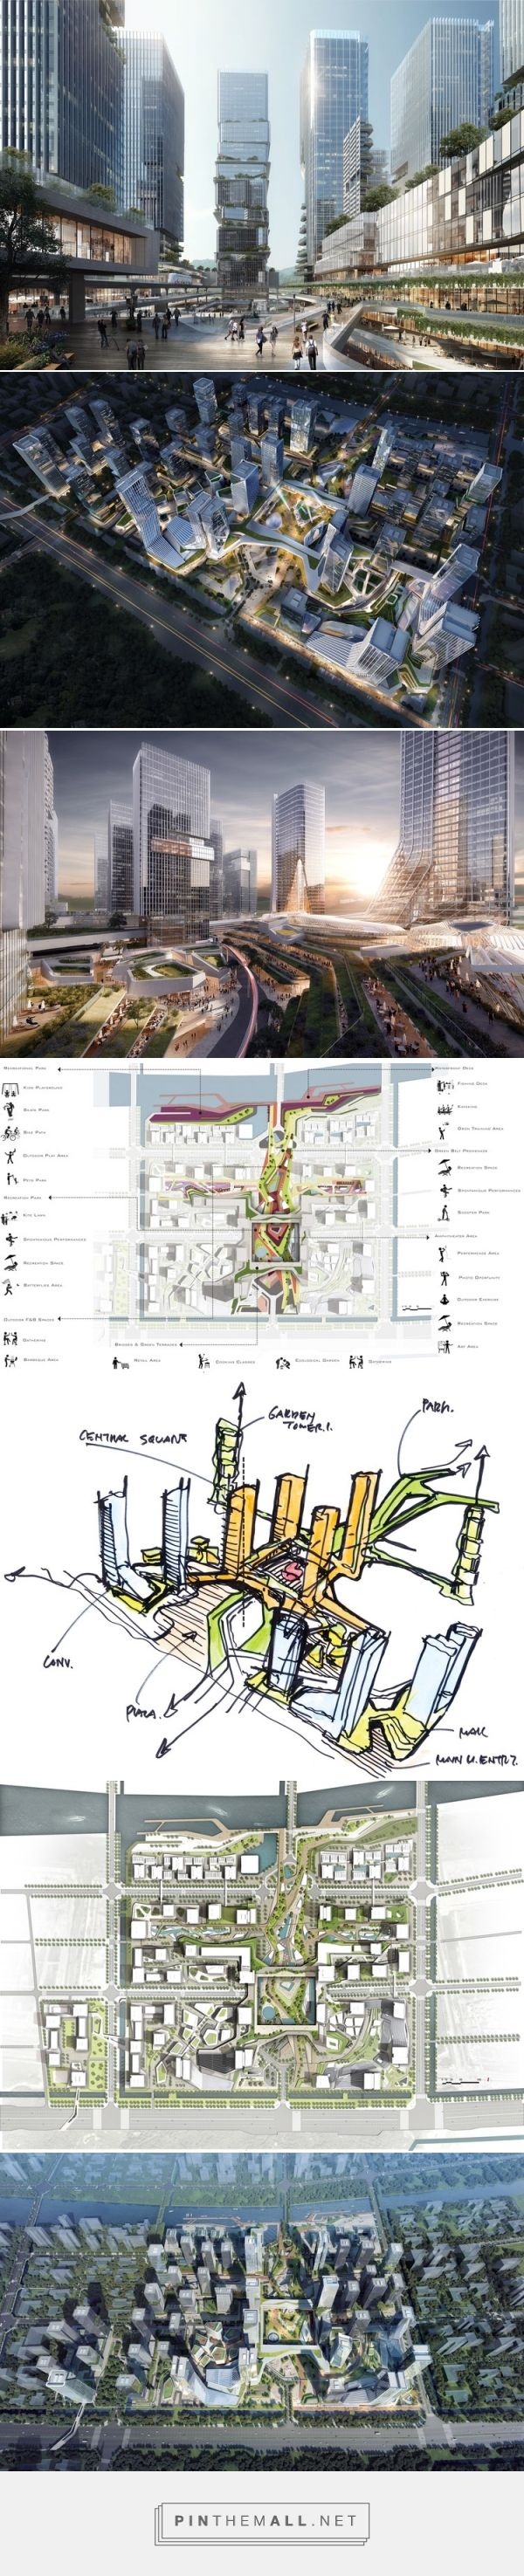 10 DESIGN Wins Competition for Massive Urban Development in Zhuhai | ArchDaily http://www.archdaily.com/795578/10-design-wins-competition-for-massive-urban-development-in-zhuhai - created via https://pinthemall.net